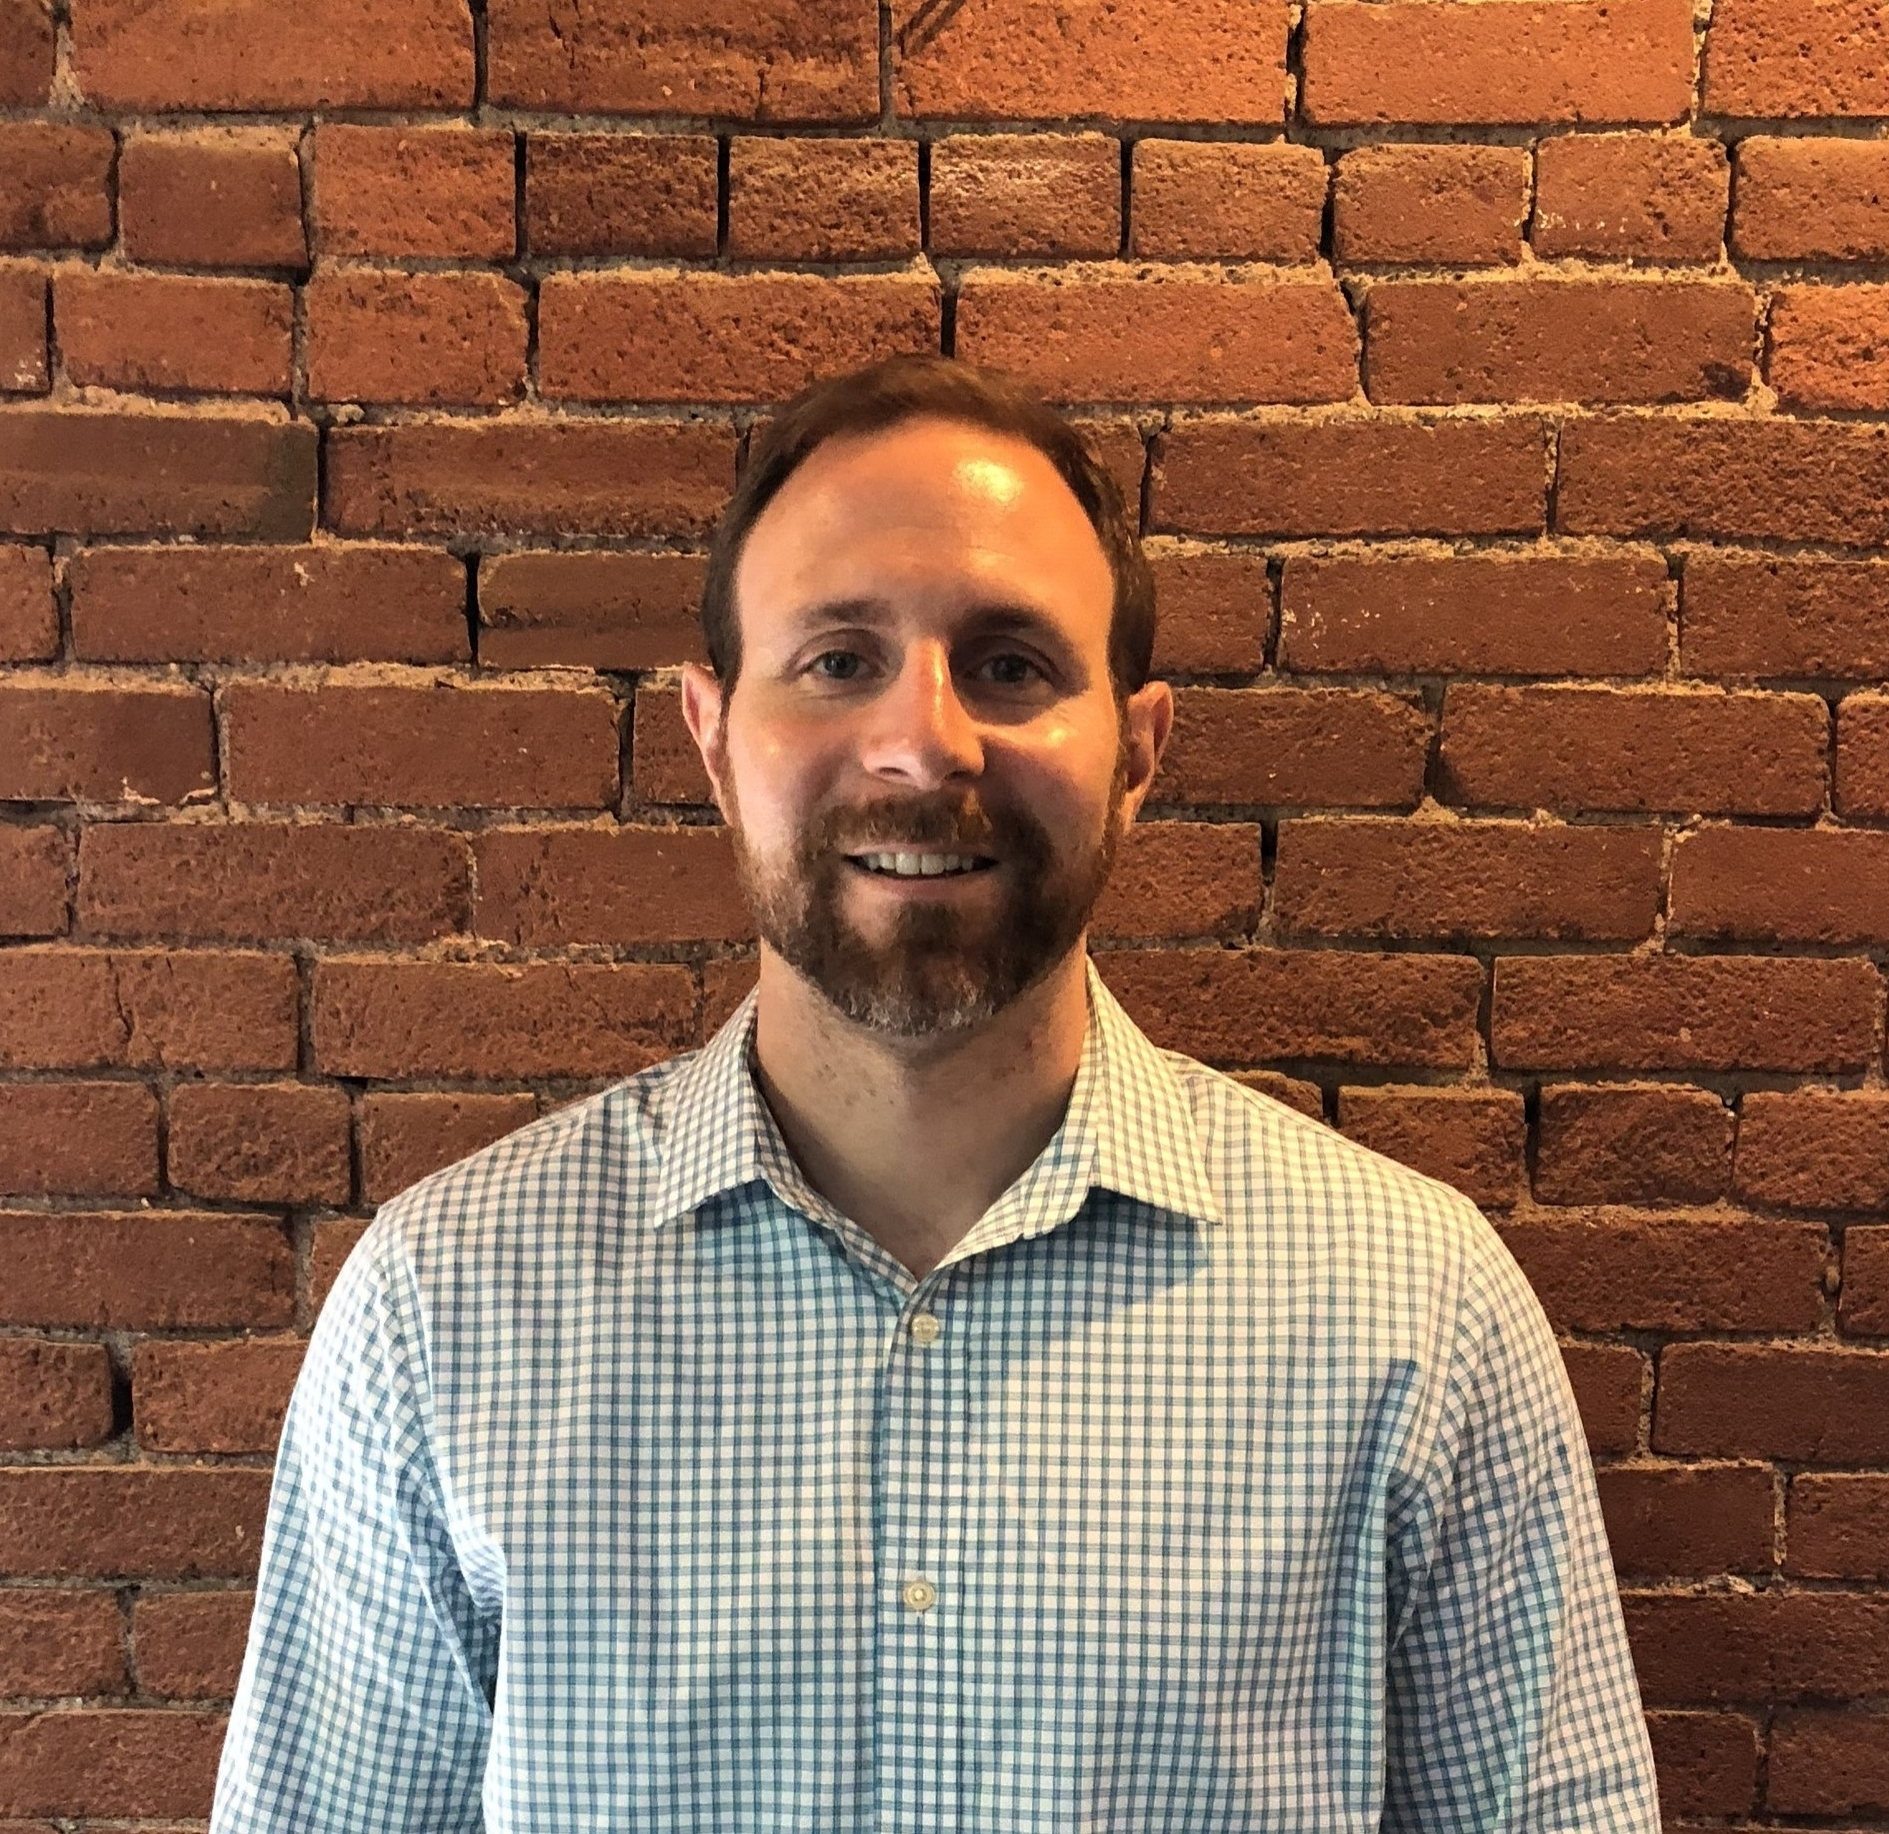 Philip (Phil) Hahn has always enjoyed growing teams and building value on the foundations of organizations throughout his career.  After completing a Bachelor's degree in Electrical Computer Engineering from Virginia Military Institute, Phil served as an Officer in the U.S. Air Force obtaining the rank of Major. Phil has also completed his Master's degree in Systems Engineering from Johns Hopkins University and a Masters equivalent in military leadership from the Marine Corps University. Over the course of his 10-year military career, Major Hahn has had numerous leadership roles leading and developing teams large and small, from various demographics, nationalities, and backgrounds. He has designed and led classified high-risk flight test missions on multibillion-dollar aircraft and has been influential in the development of some our countries most sensitive technologies in support of national defense.  In 2016 Phil transitioned from active duty military to Carnegie Mellon University to pursue his passion for business and entrepreneurship. Post-graduation, Phil has dedicated his efforts to acquiring a small to medium-sized business. He is excited at the opportunity to continue to develop an organization through its most valuable resource, it's people.